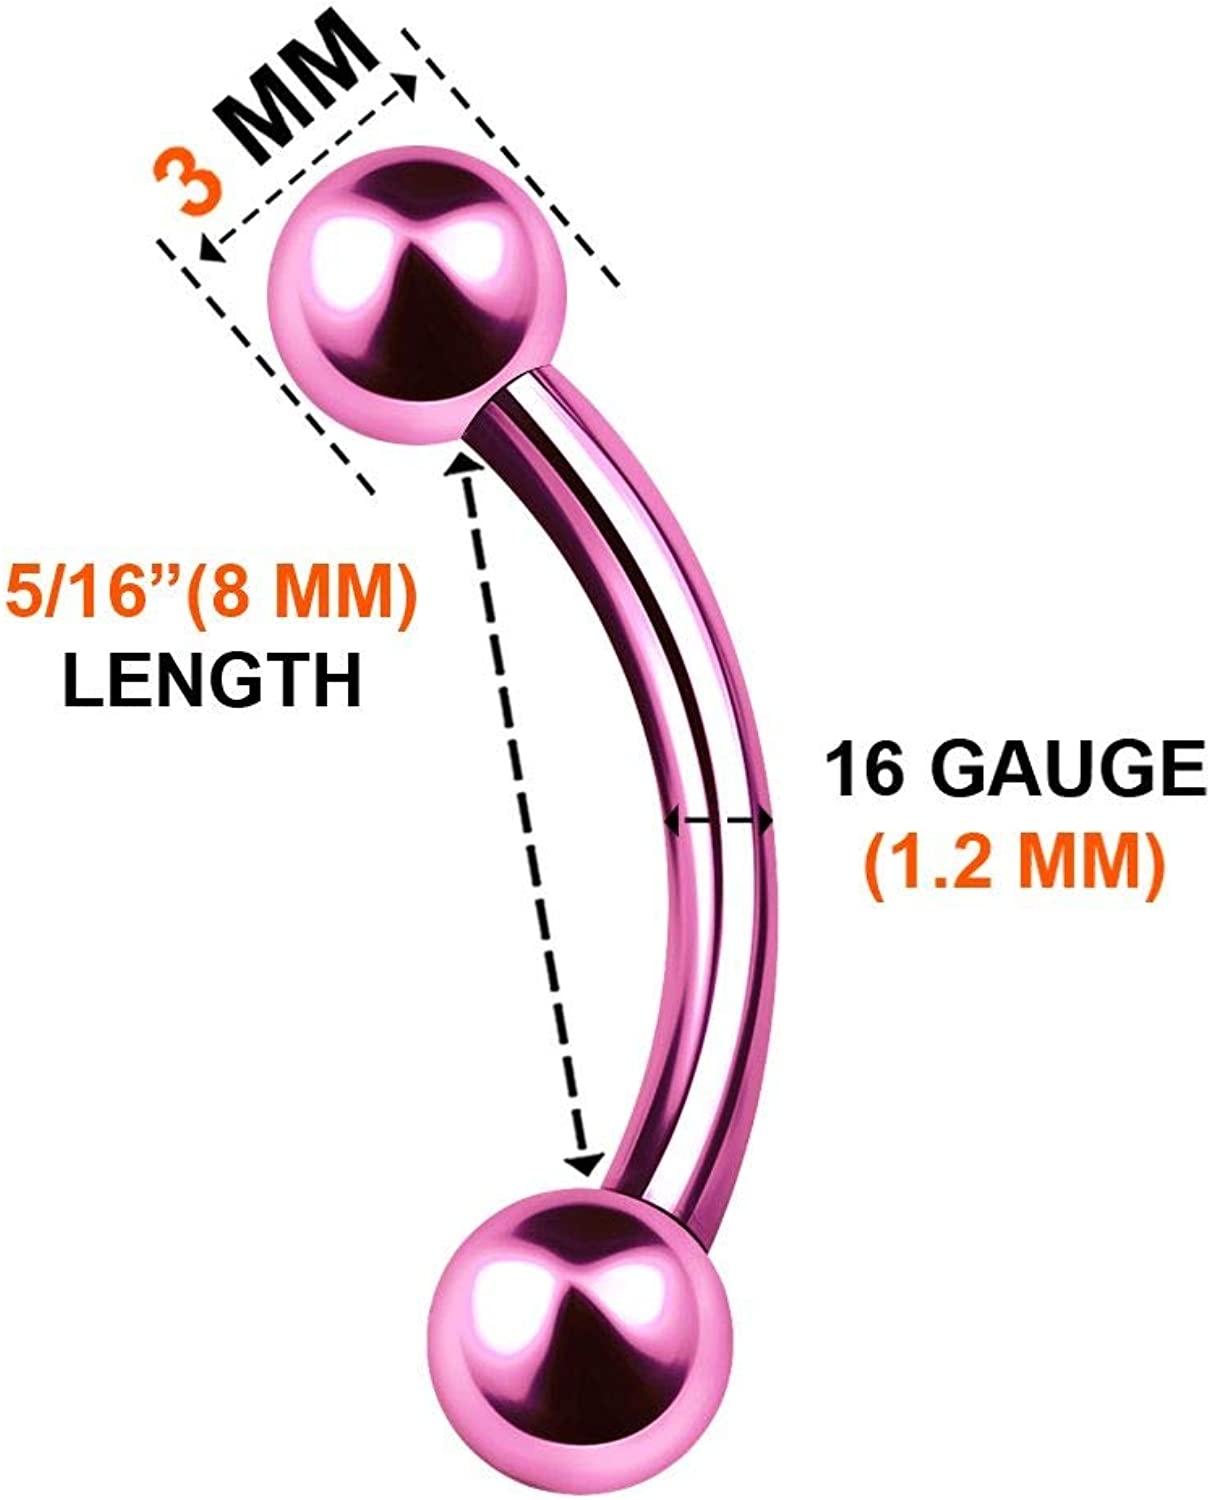 KJM FASHION 6PCS Surgical Steel Anodized Curved Barbell Ring Ball Cartilage Tragus Rook Labret Earrings Eyebrow Piercing Jewelry